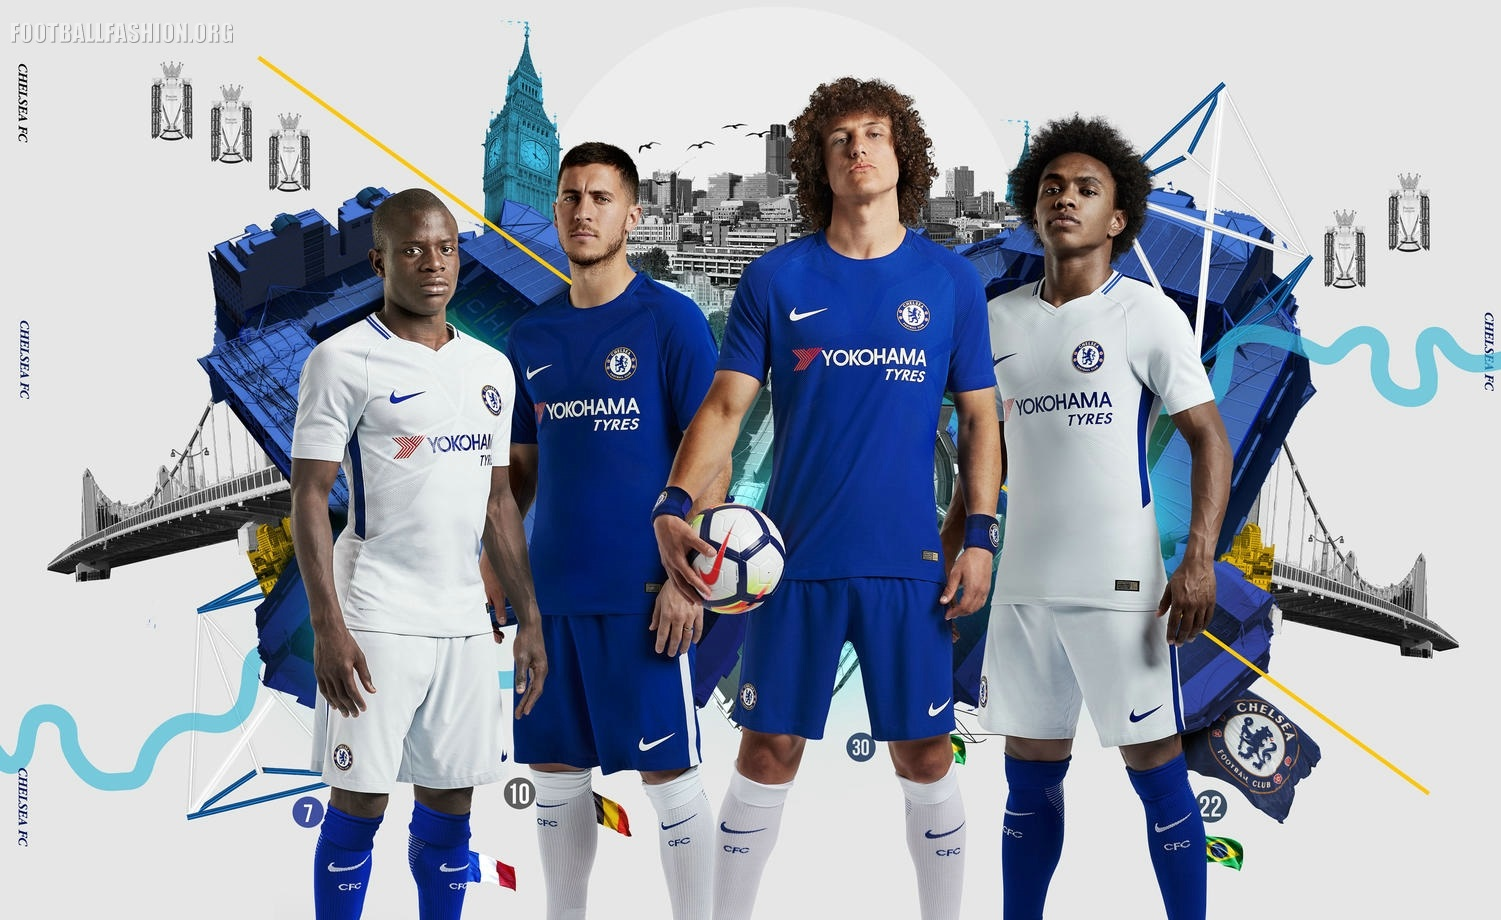 Chelsea FC 2017 2018 Nike Home and Away Football Kit, Soccer Jersey, Shirt,